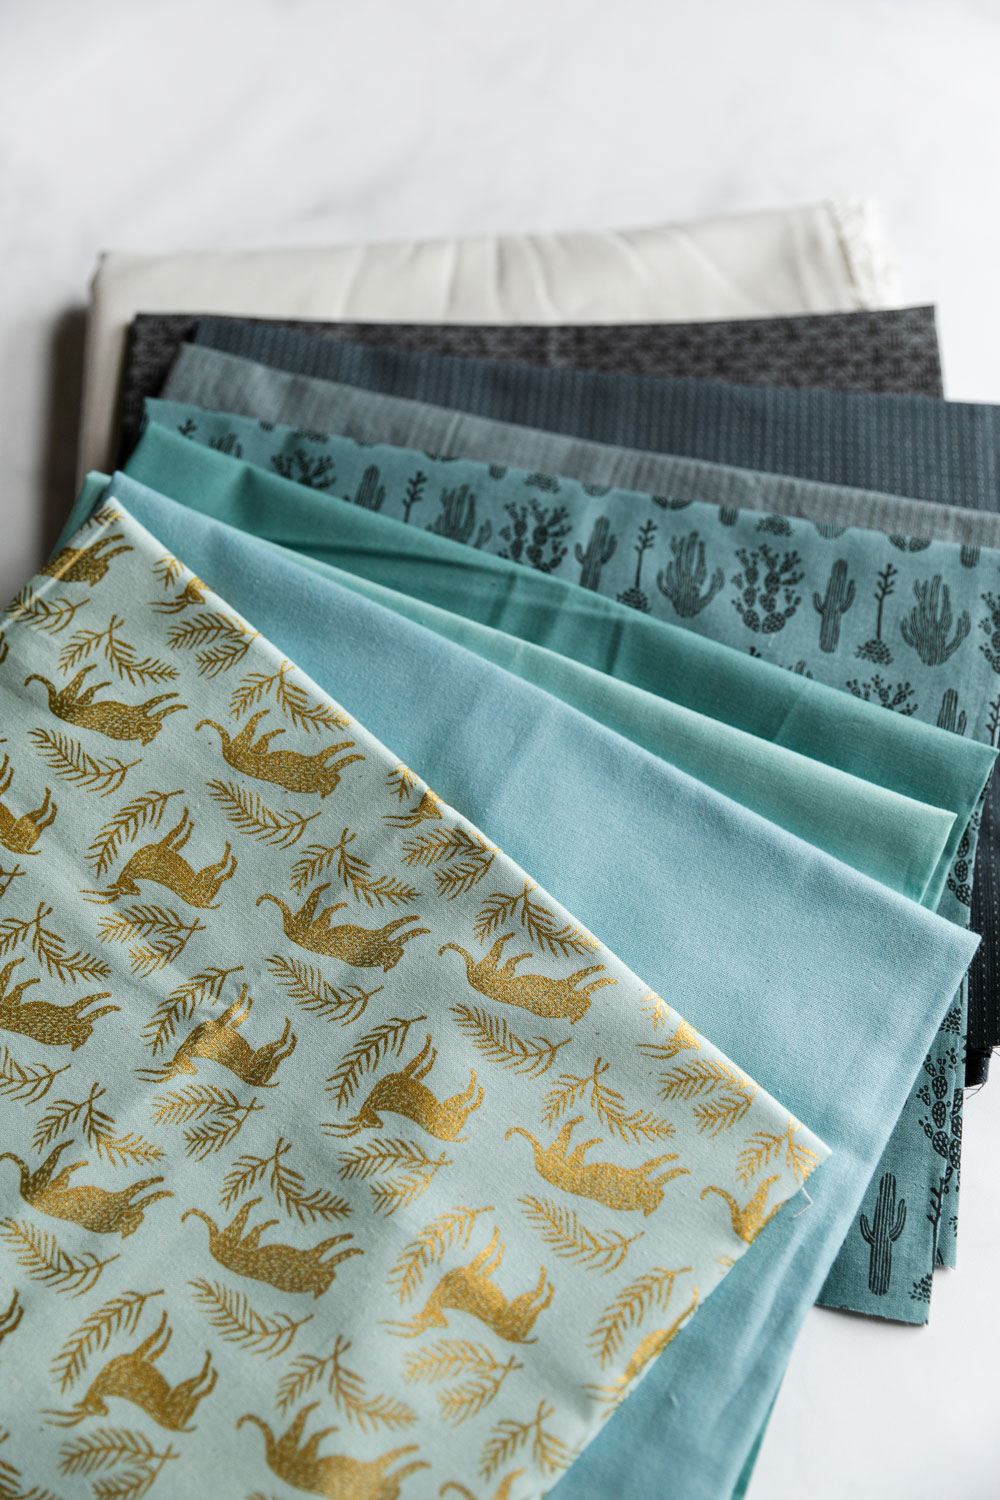 3 tips you need to know about best practices for fabric storage to prevent damage to your quilt fabric stash. Follow these simple steps to keep your quilt fabrics looking brand new! suzyquilts.com #quilting #fabric